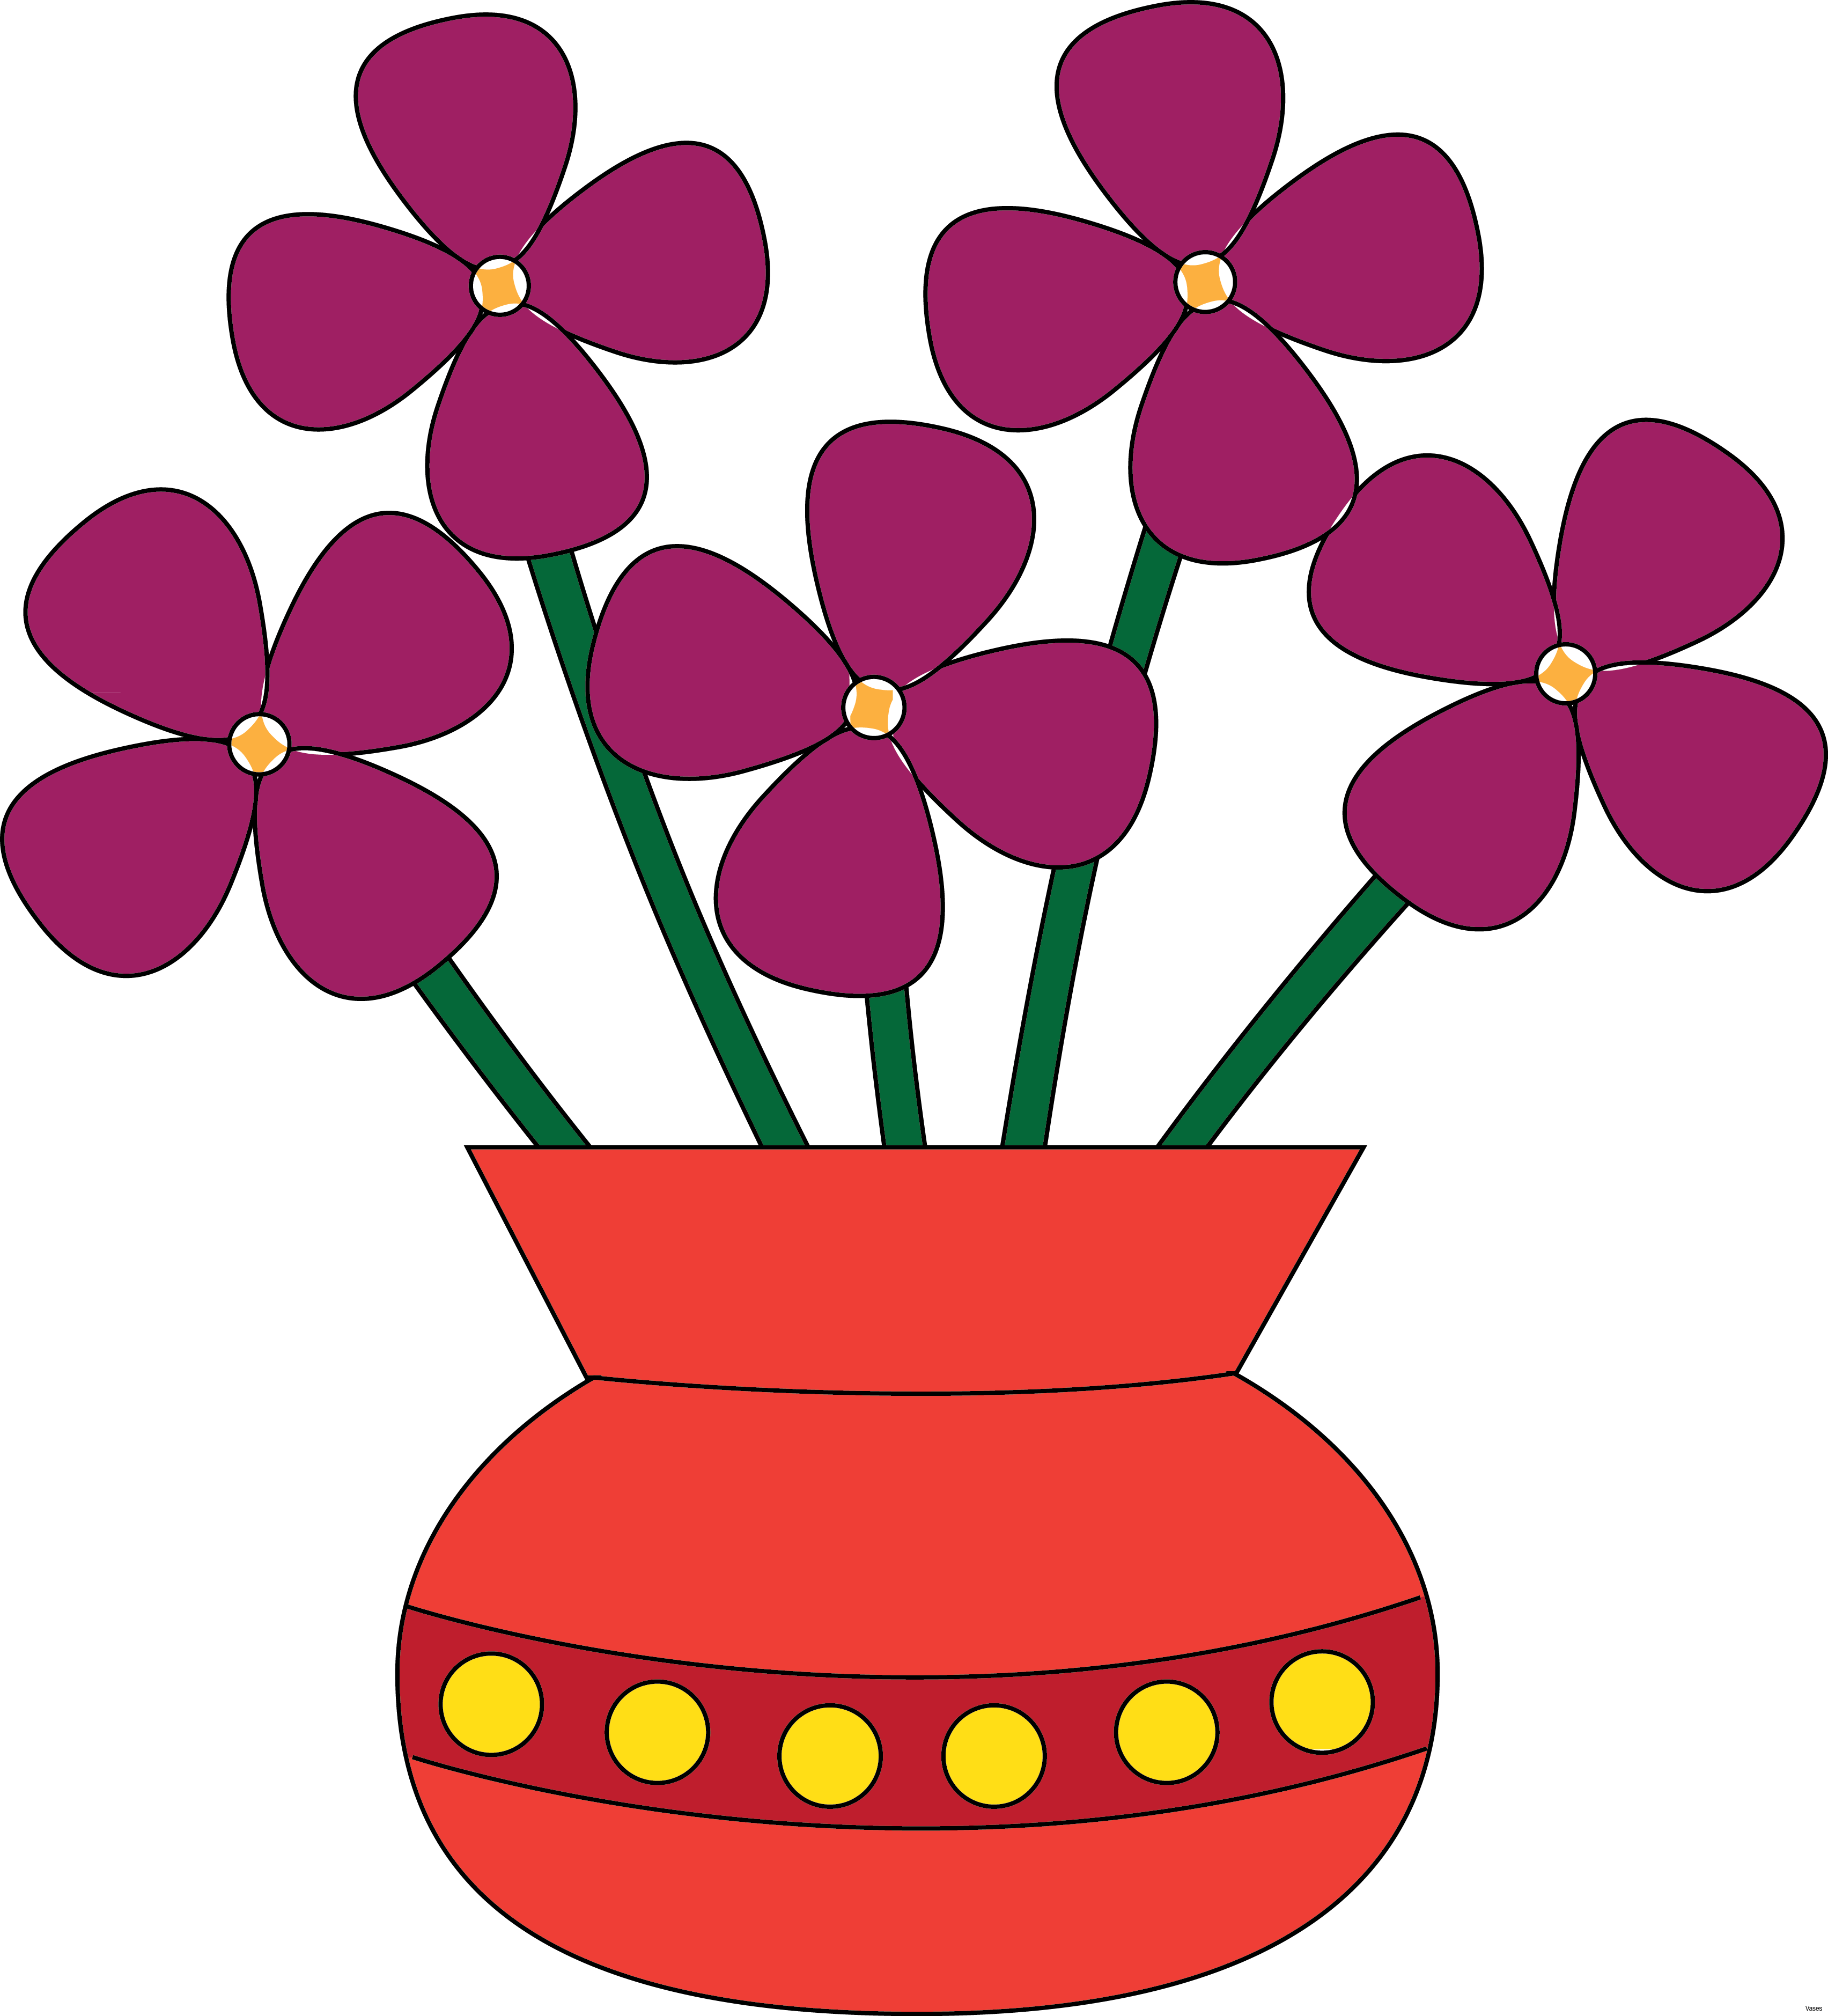 Flower vase clipart clipart images gallery for free download.